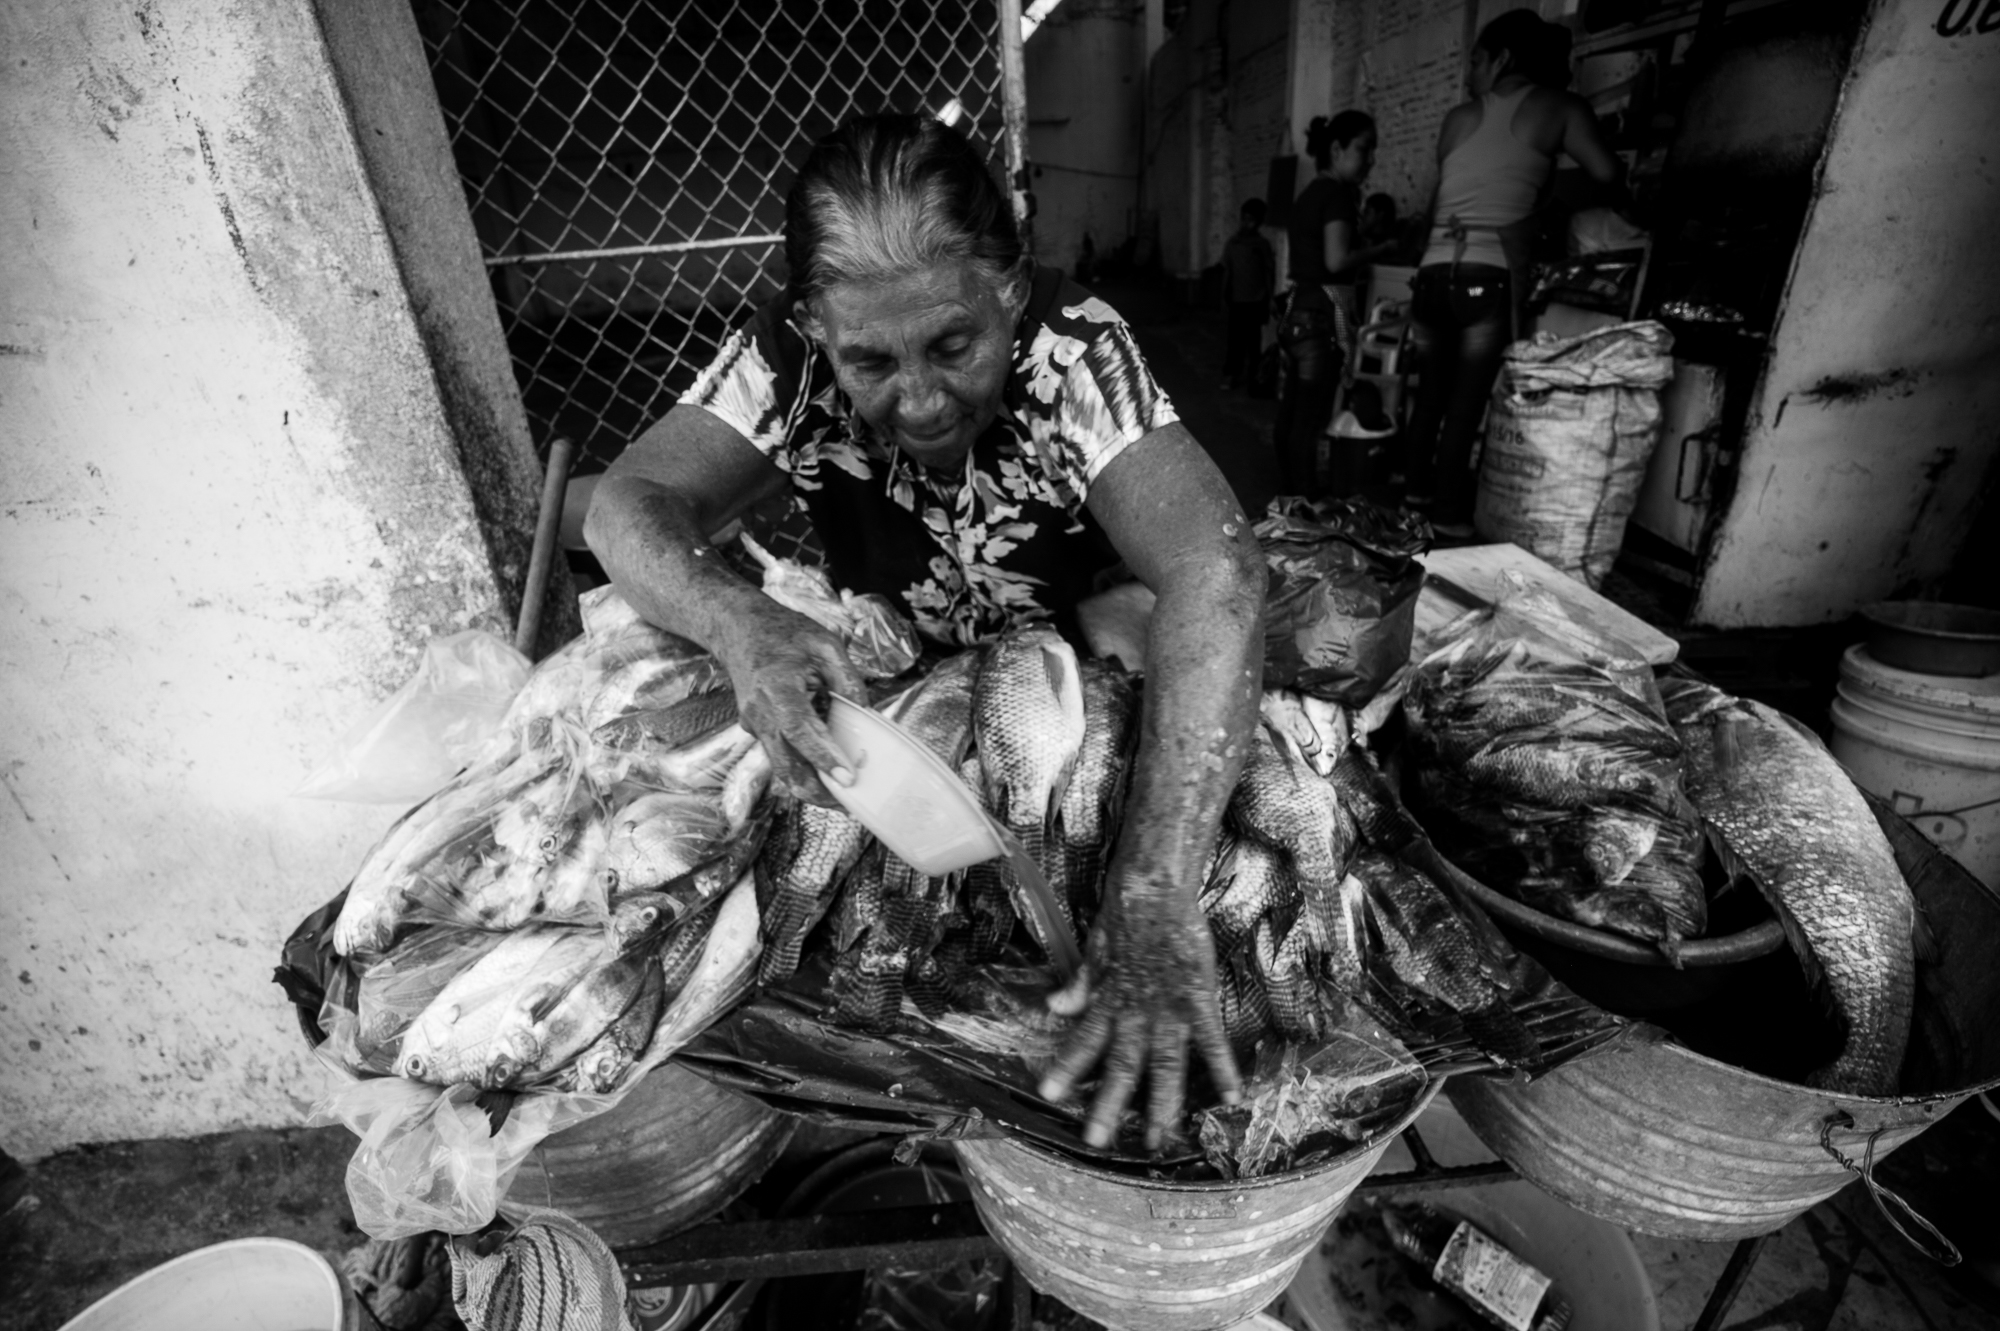 Fish seller in Tapachula.